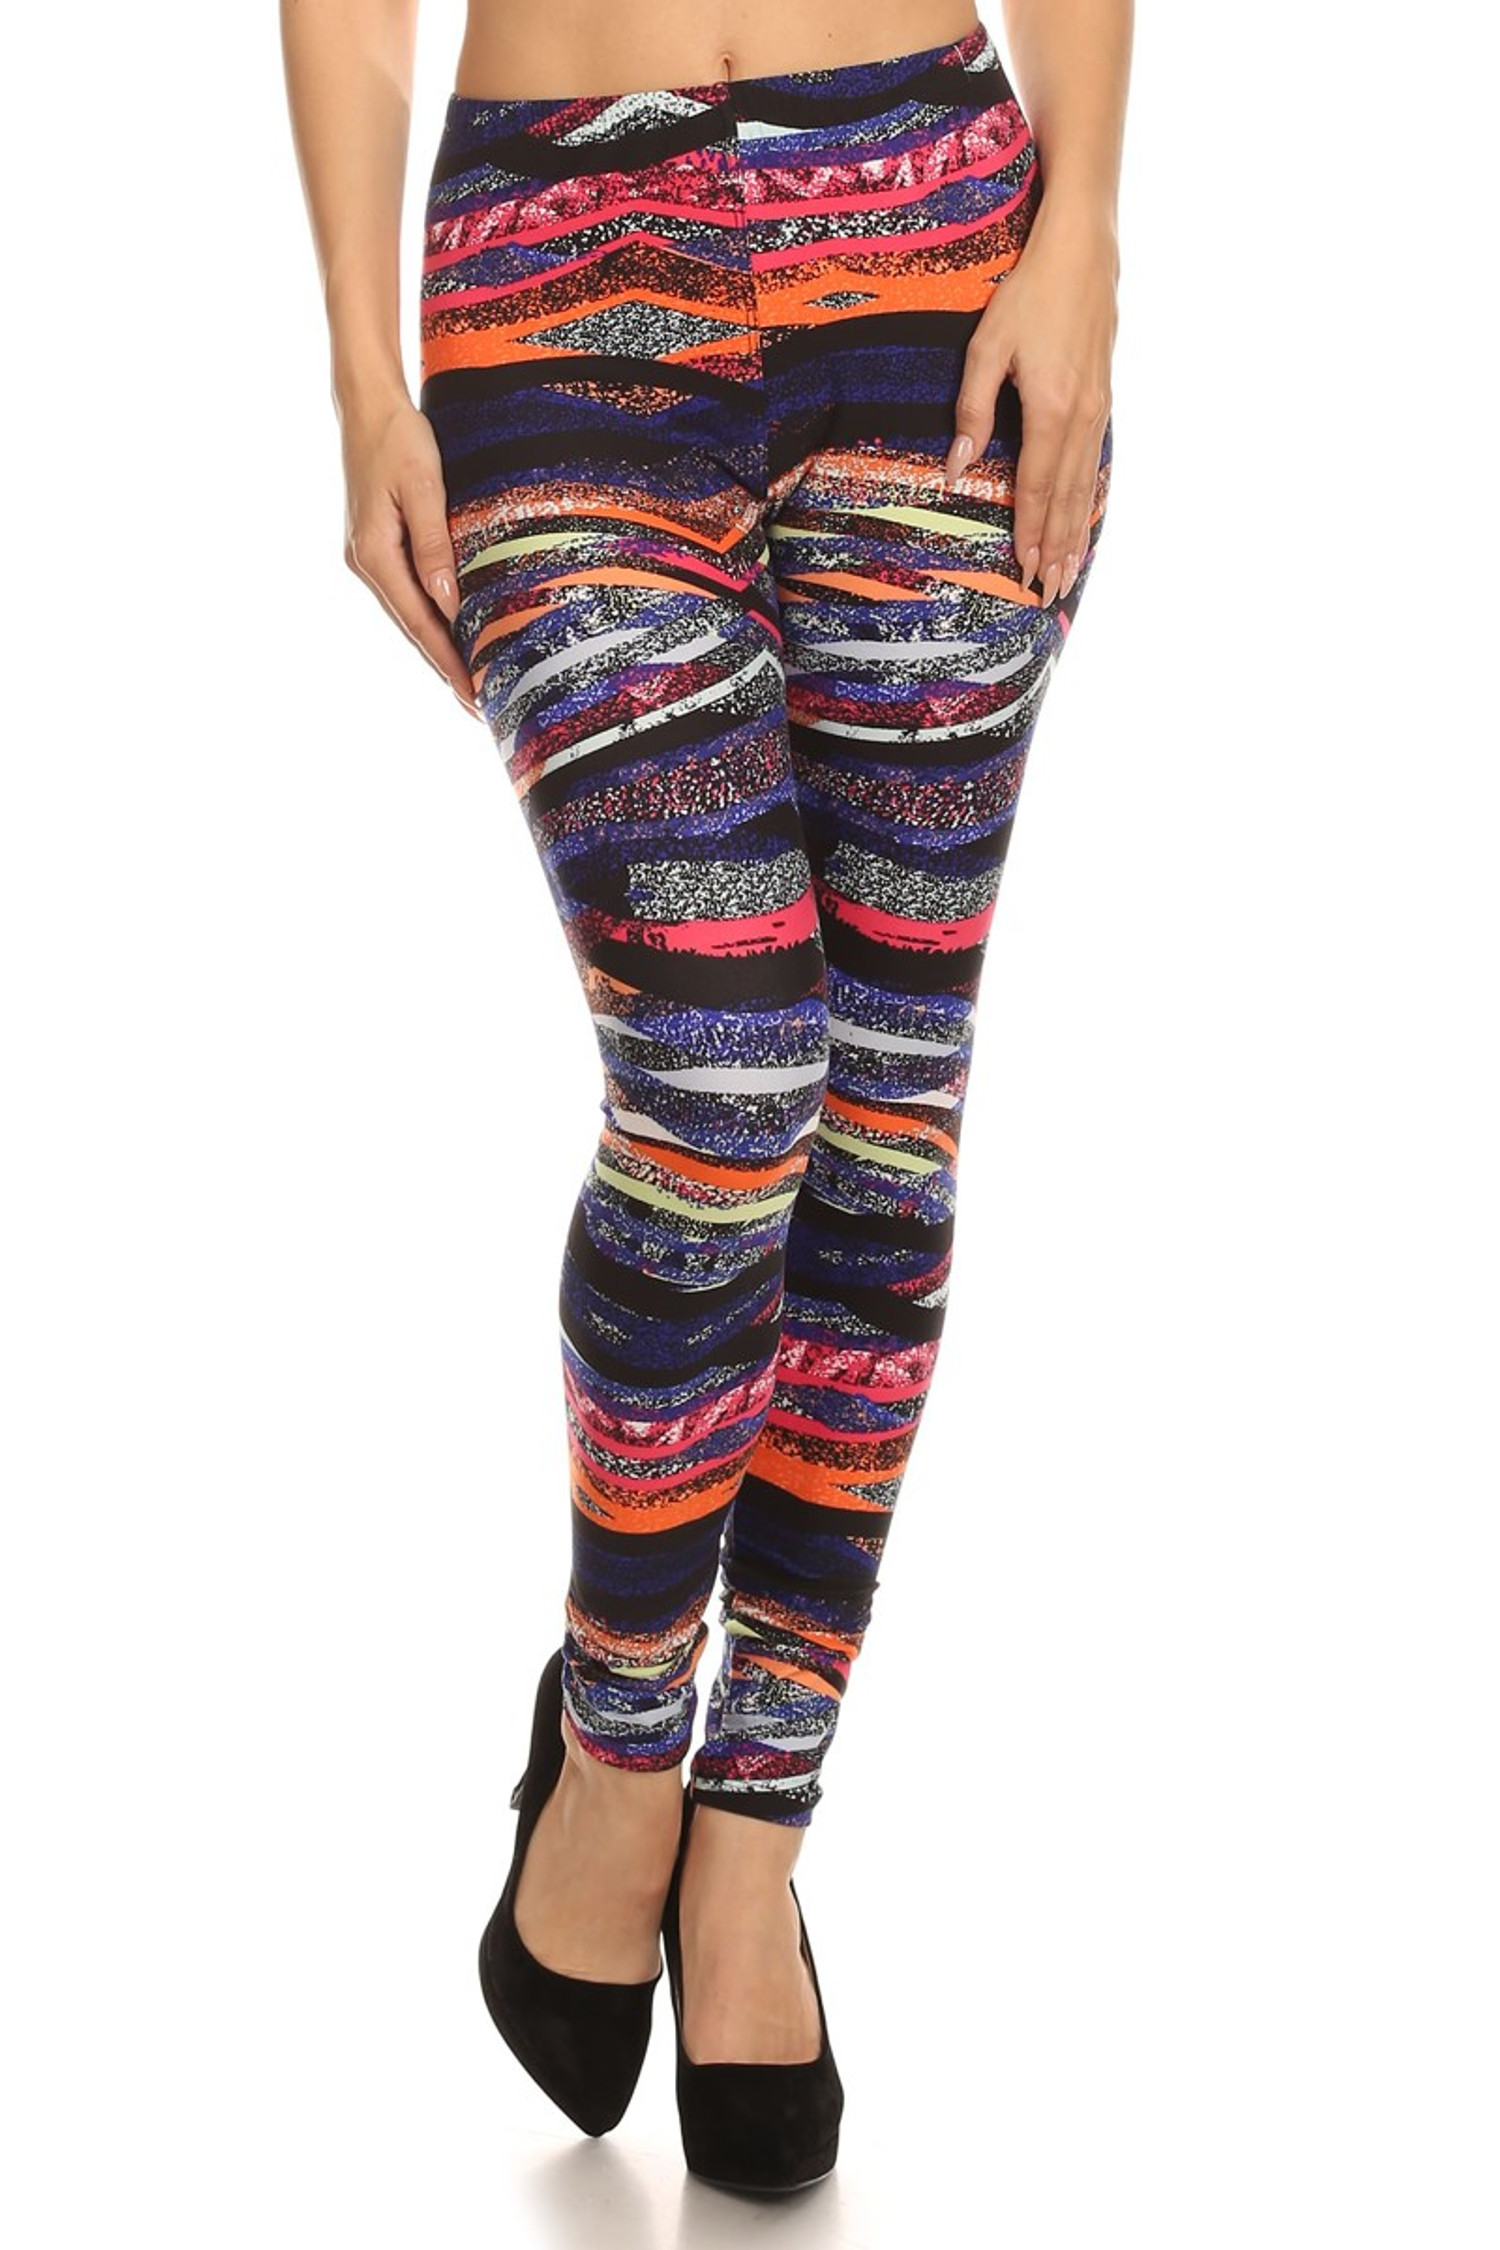 Bands of Color Leggings